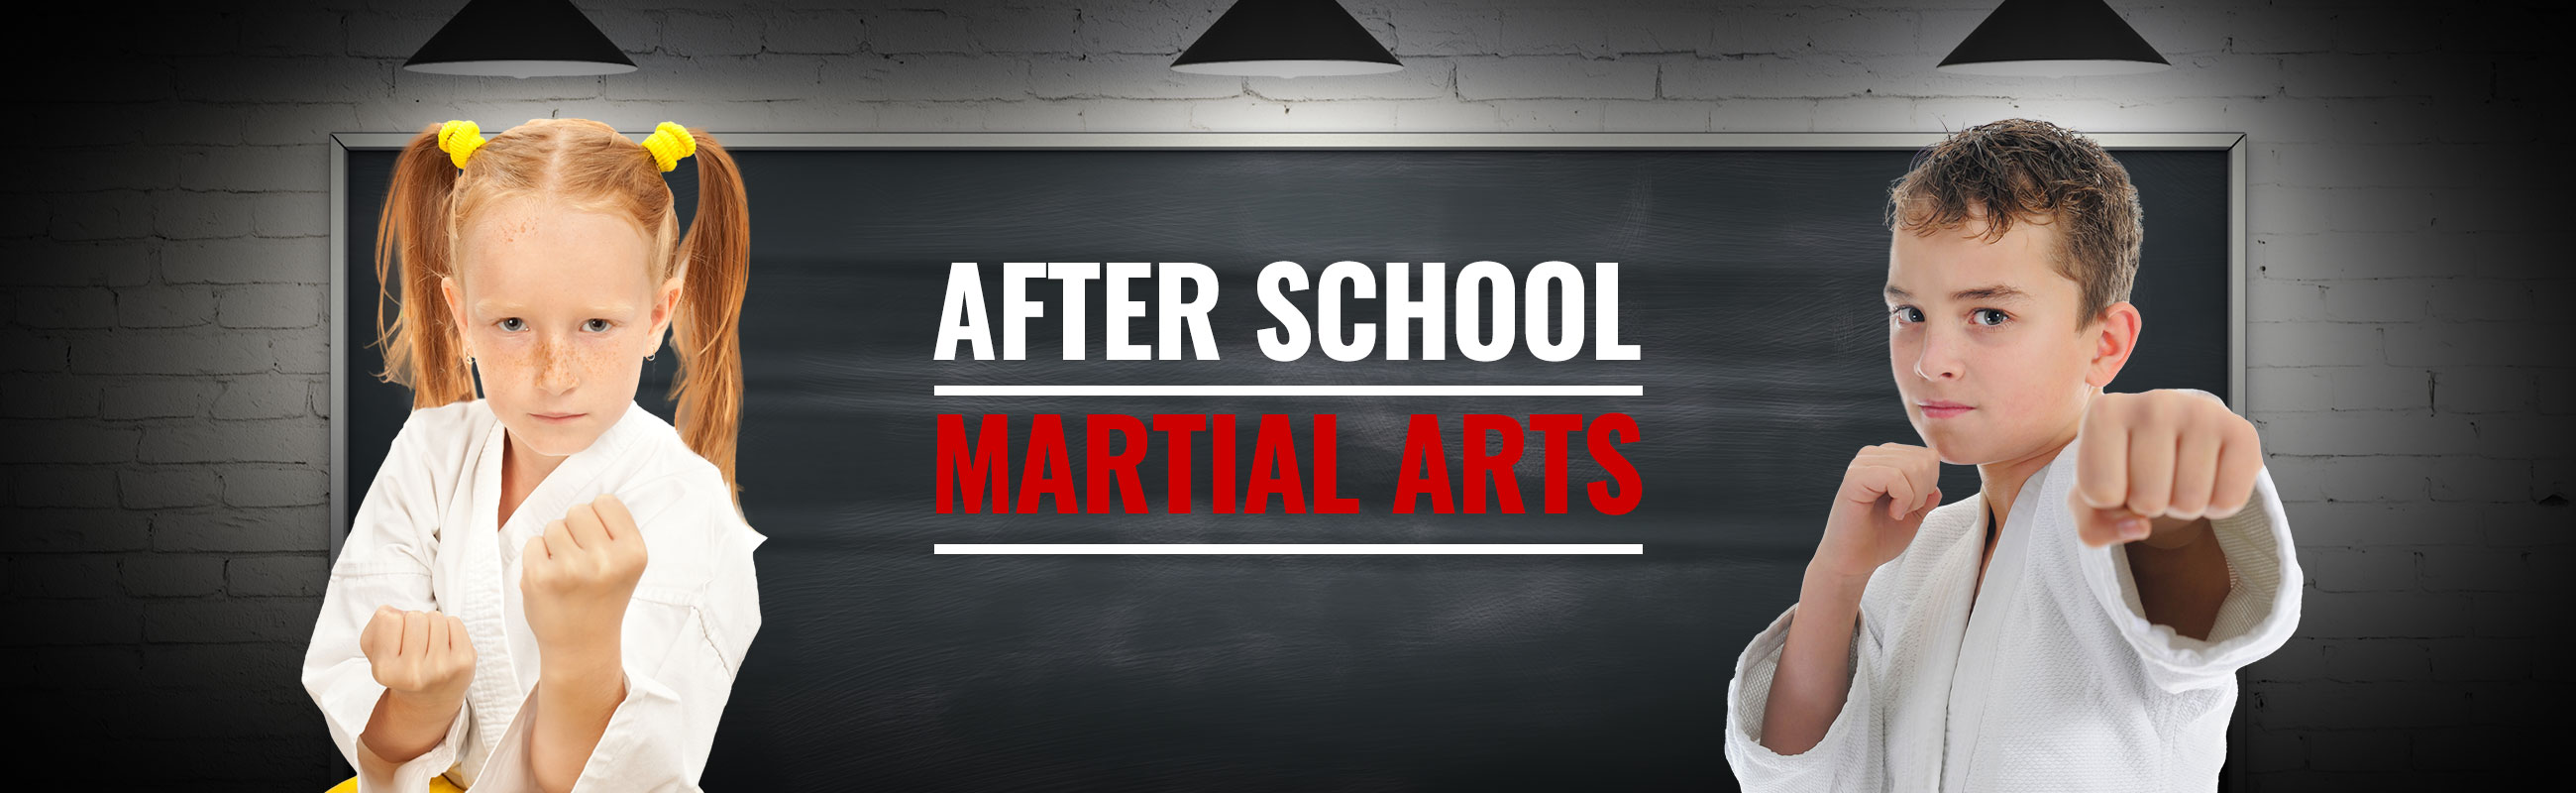 slider-after-school-martial-arts